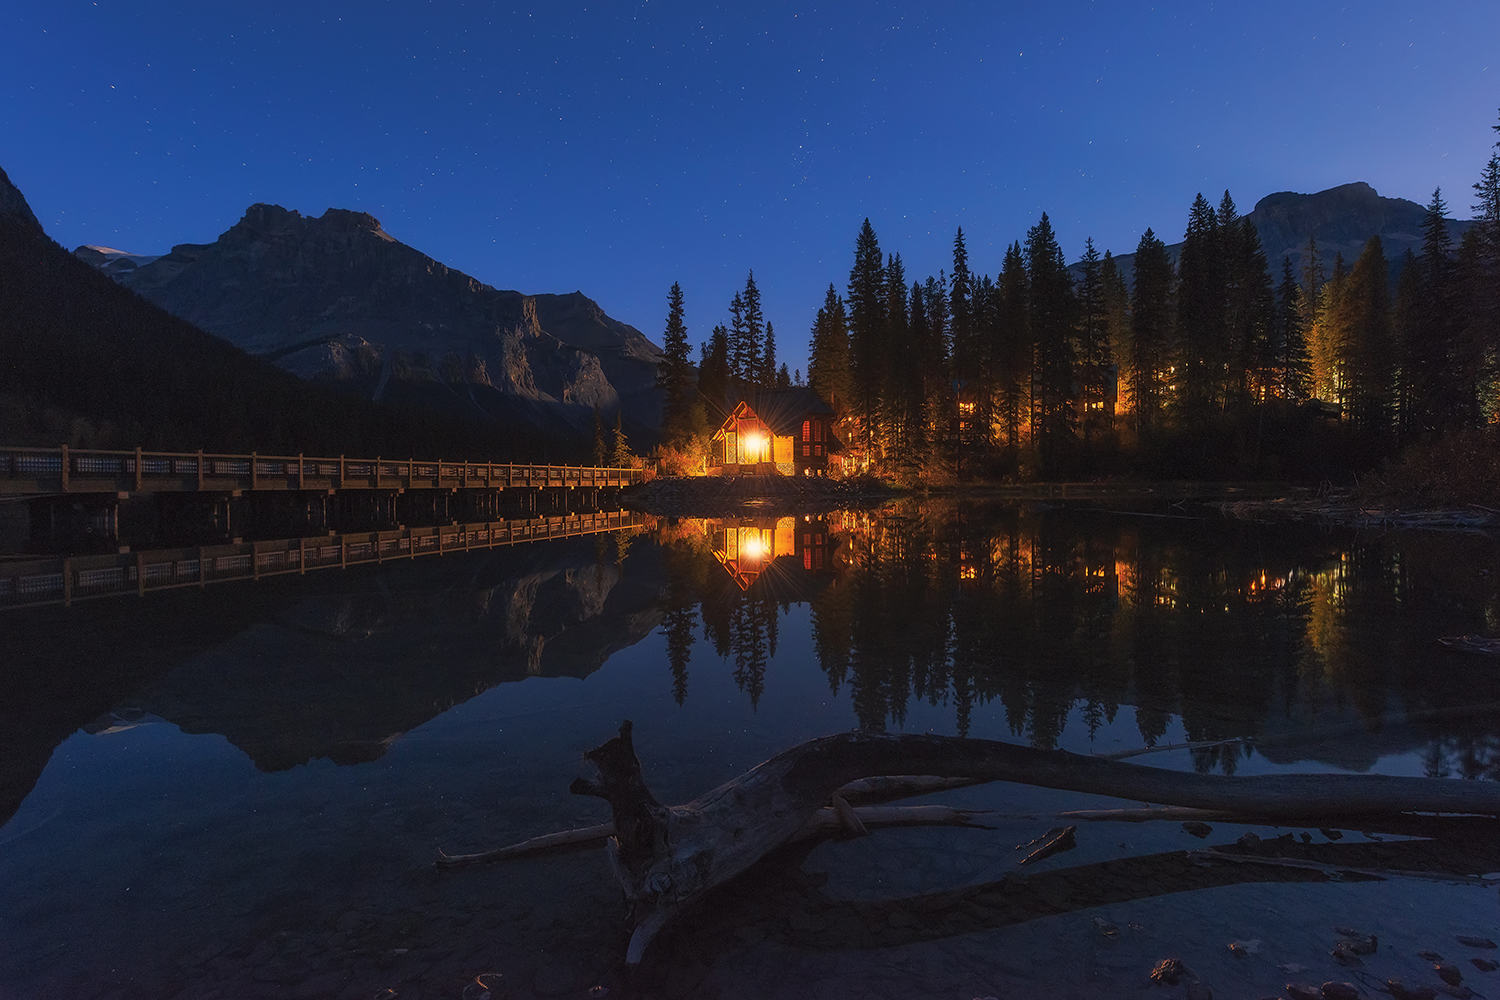 a small cabin on the lake with light on with woods and cabin reflected in water and stars seen in the sky